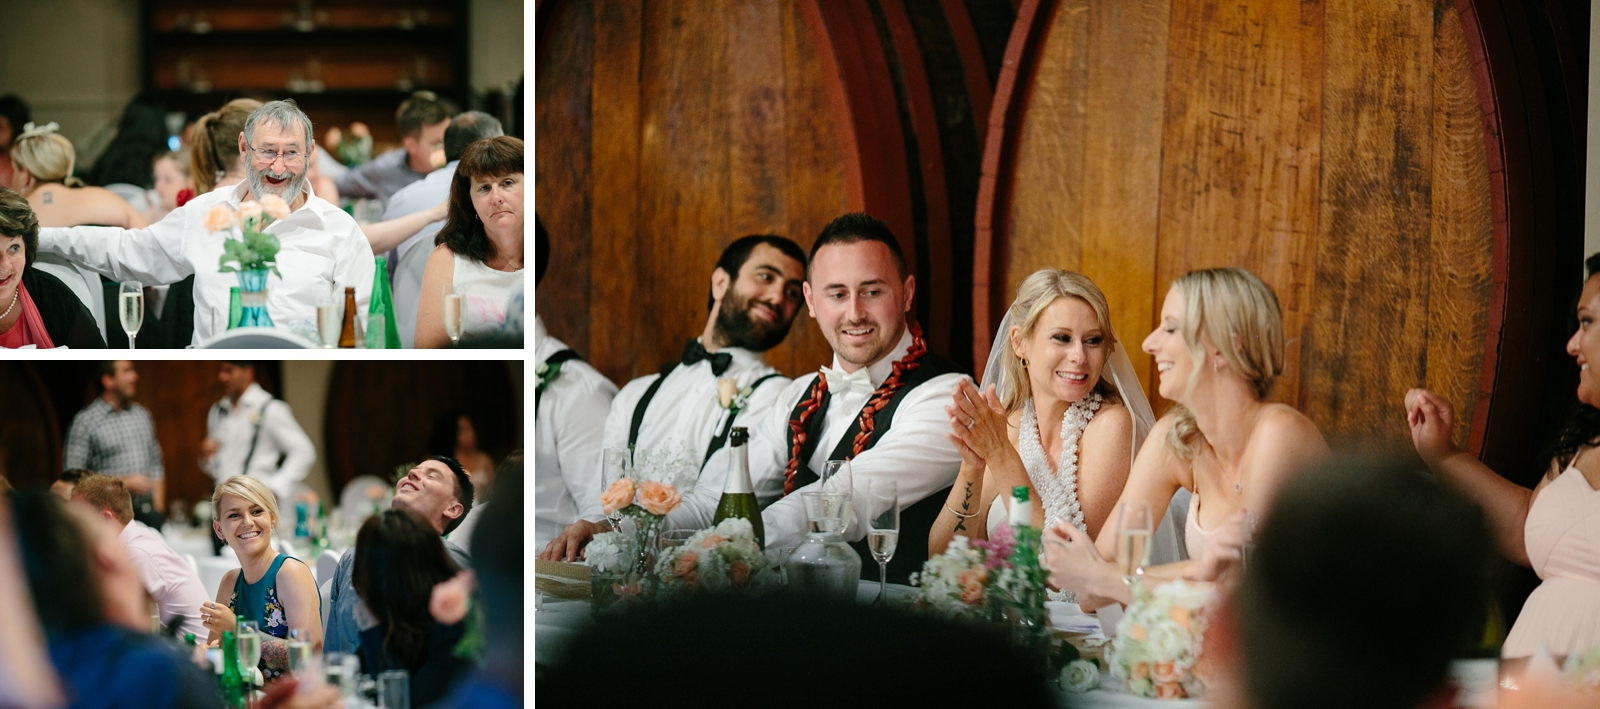 ConnorLaura_Auckland Wedding Photographer_Patty Lagera_0099.jpg